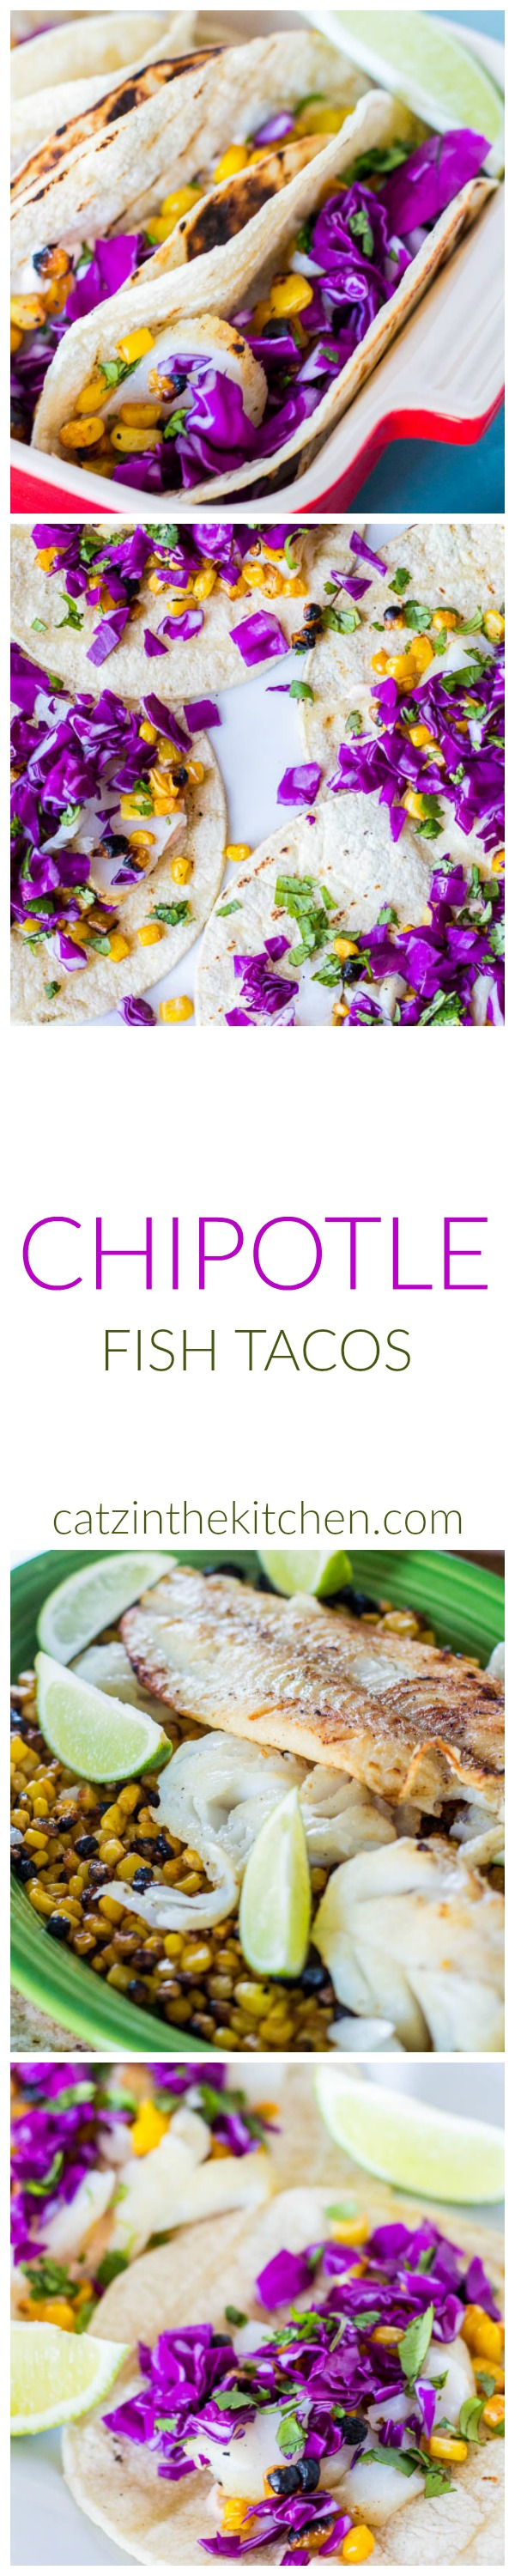 Chipotle Fish Tacos Recipe Photos